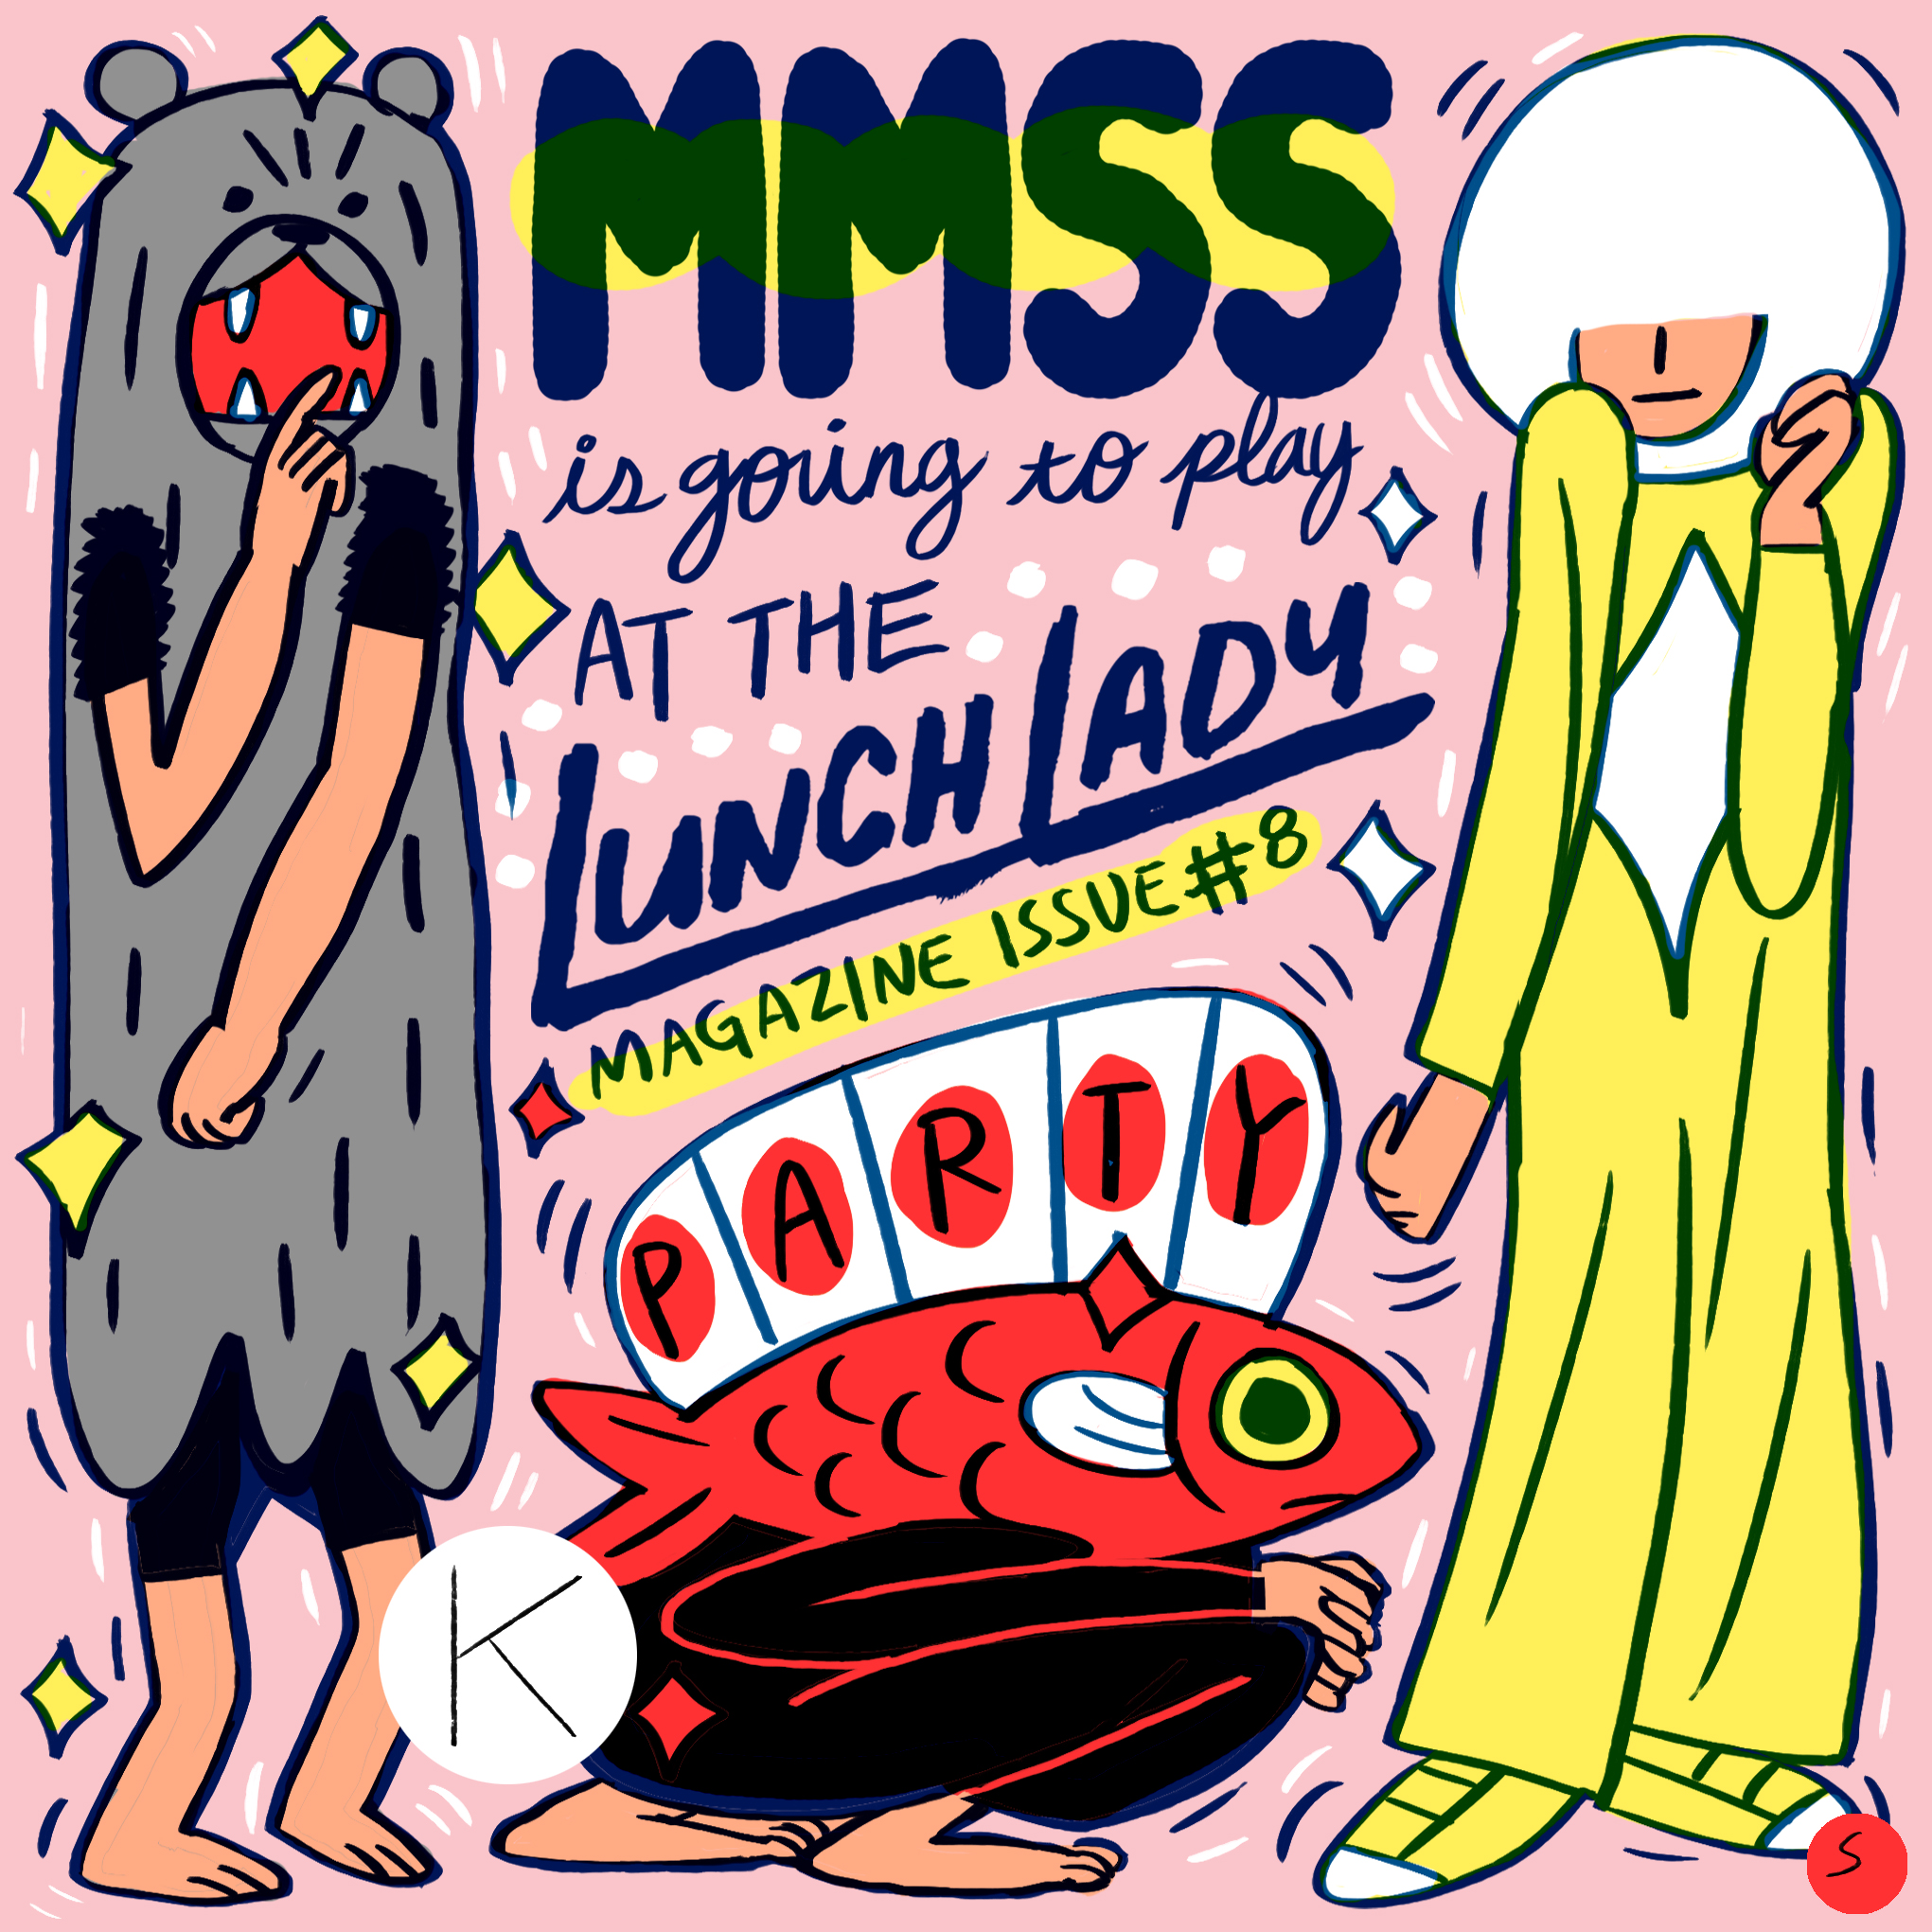 MMSS-lunchlady-poster.jpg